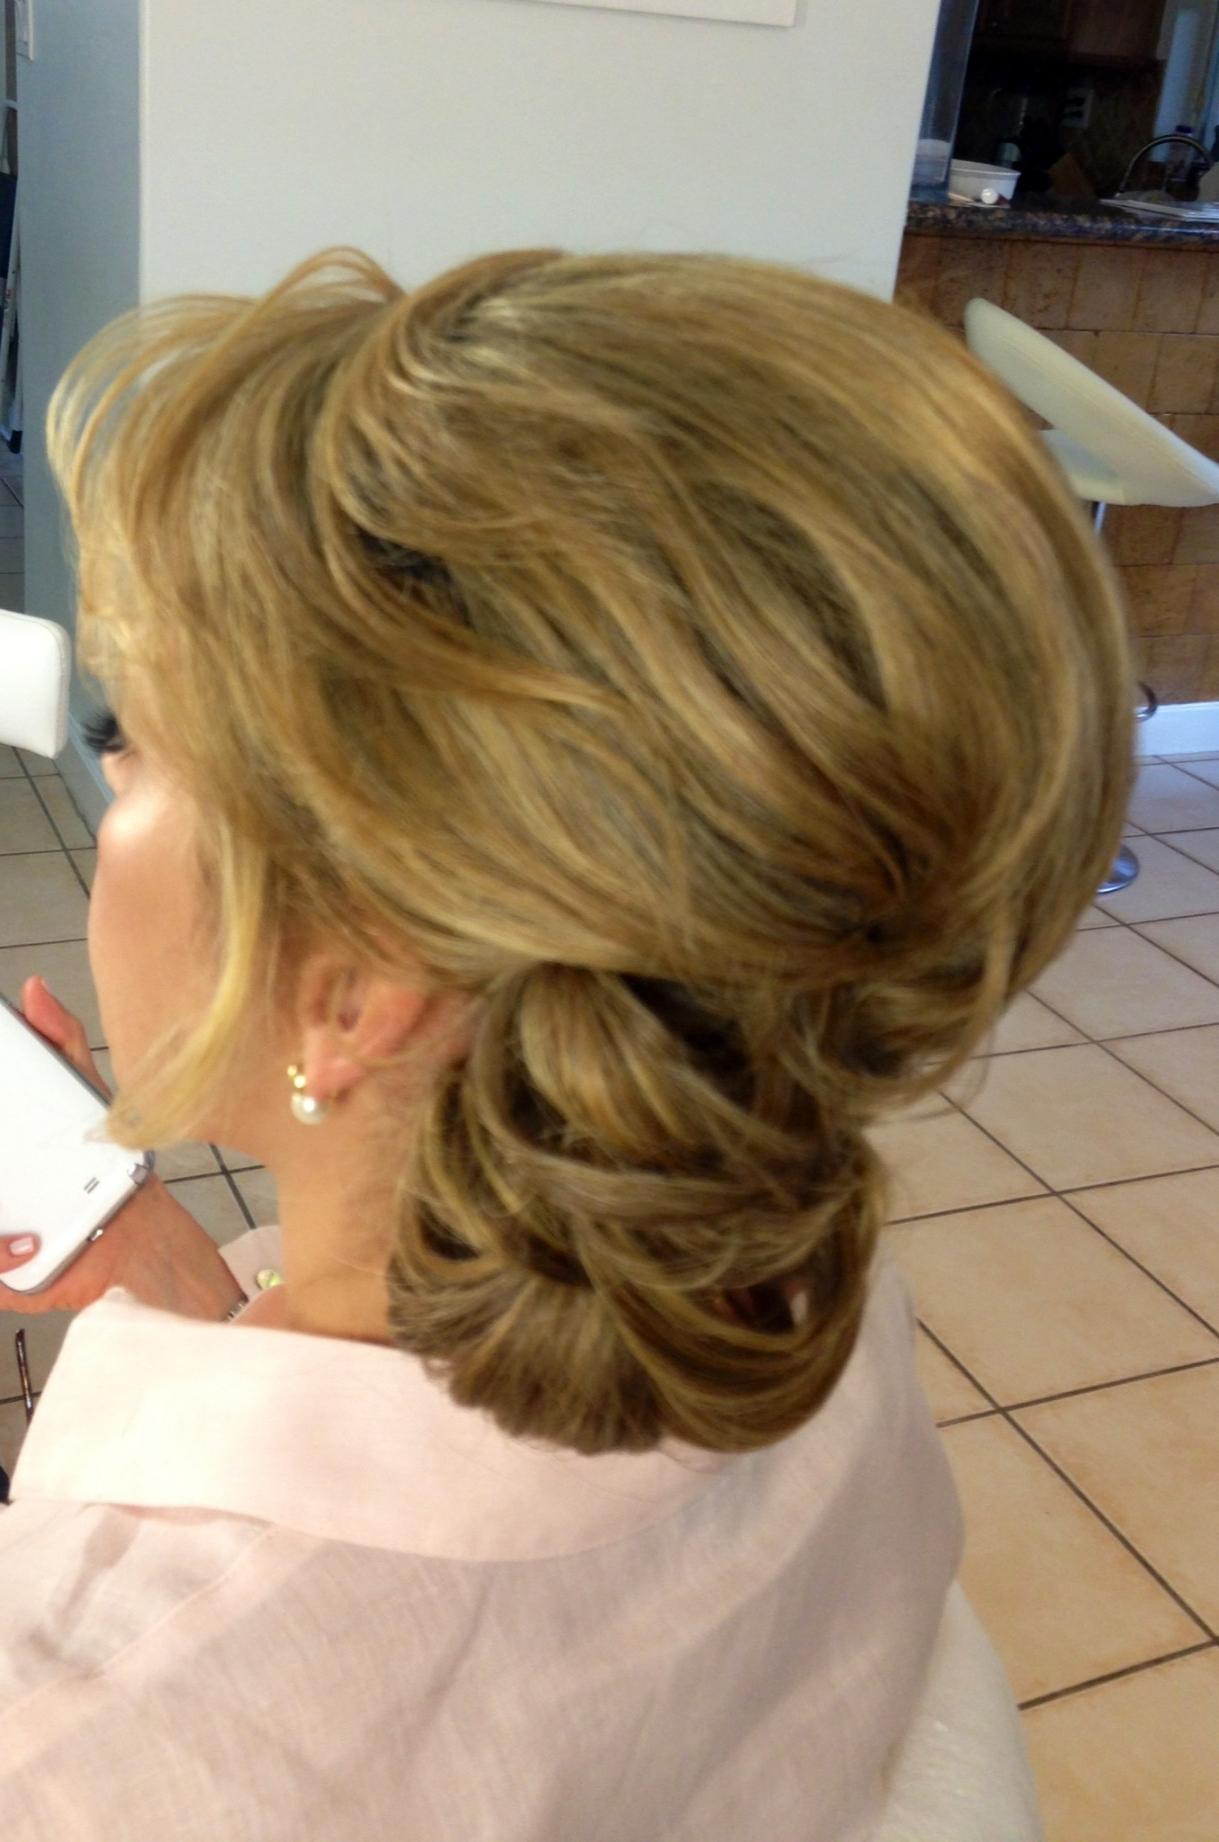 Half Up Half Down Hairstyles For Mother Of The Groom Inside Half Updo Hairstyles For Mother Of The Bride (View 4 of 15)